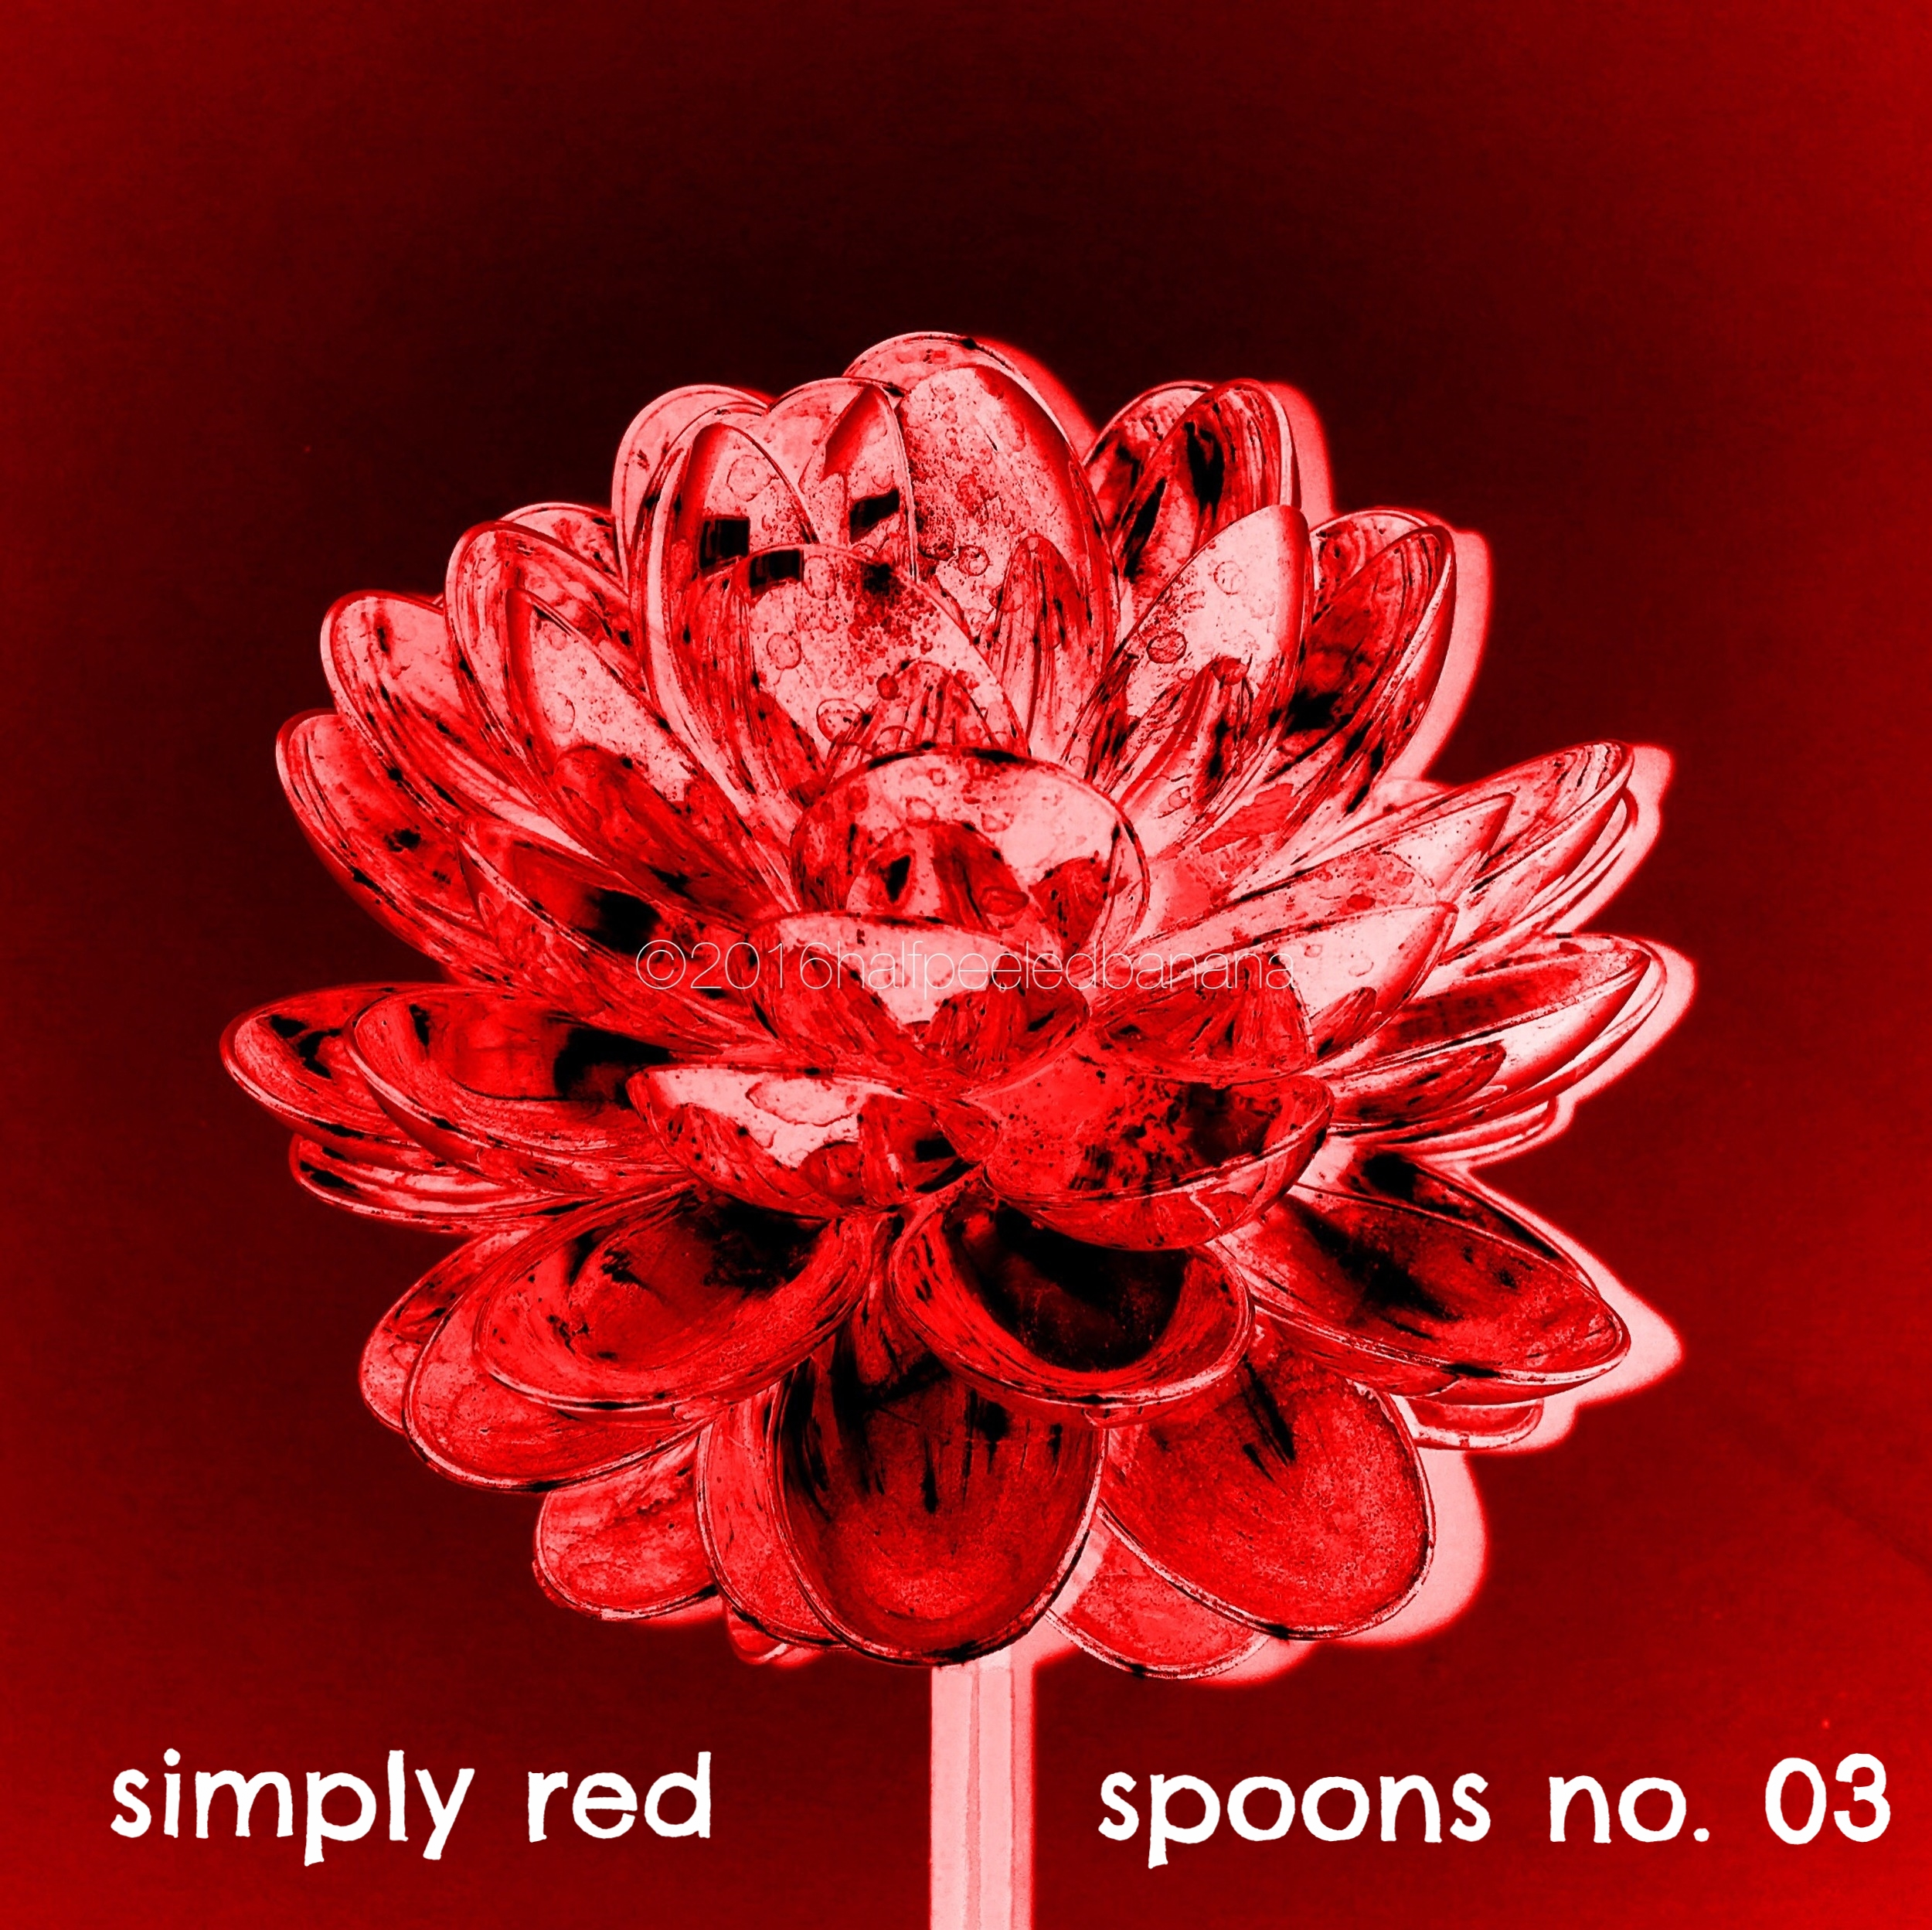 simply red - spoons print no. 03